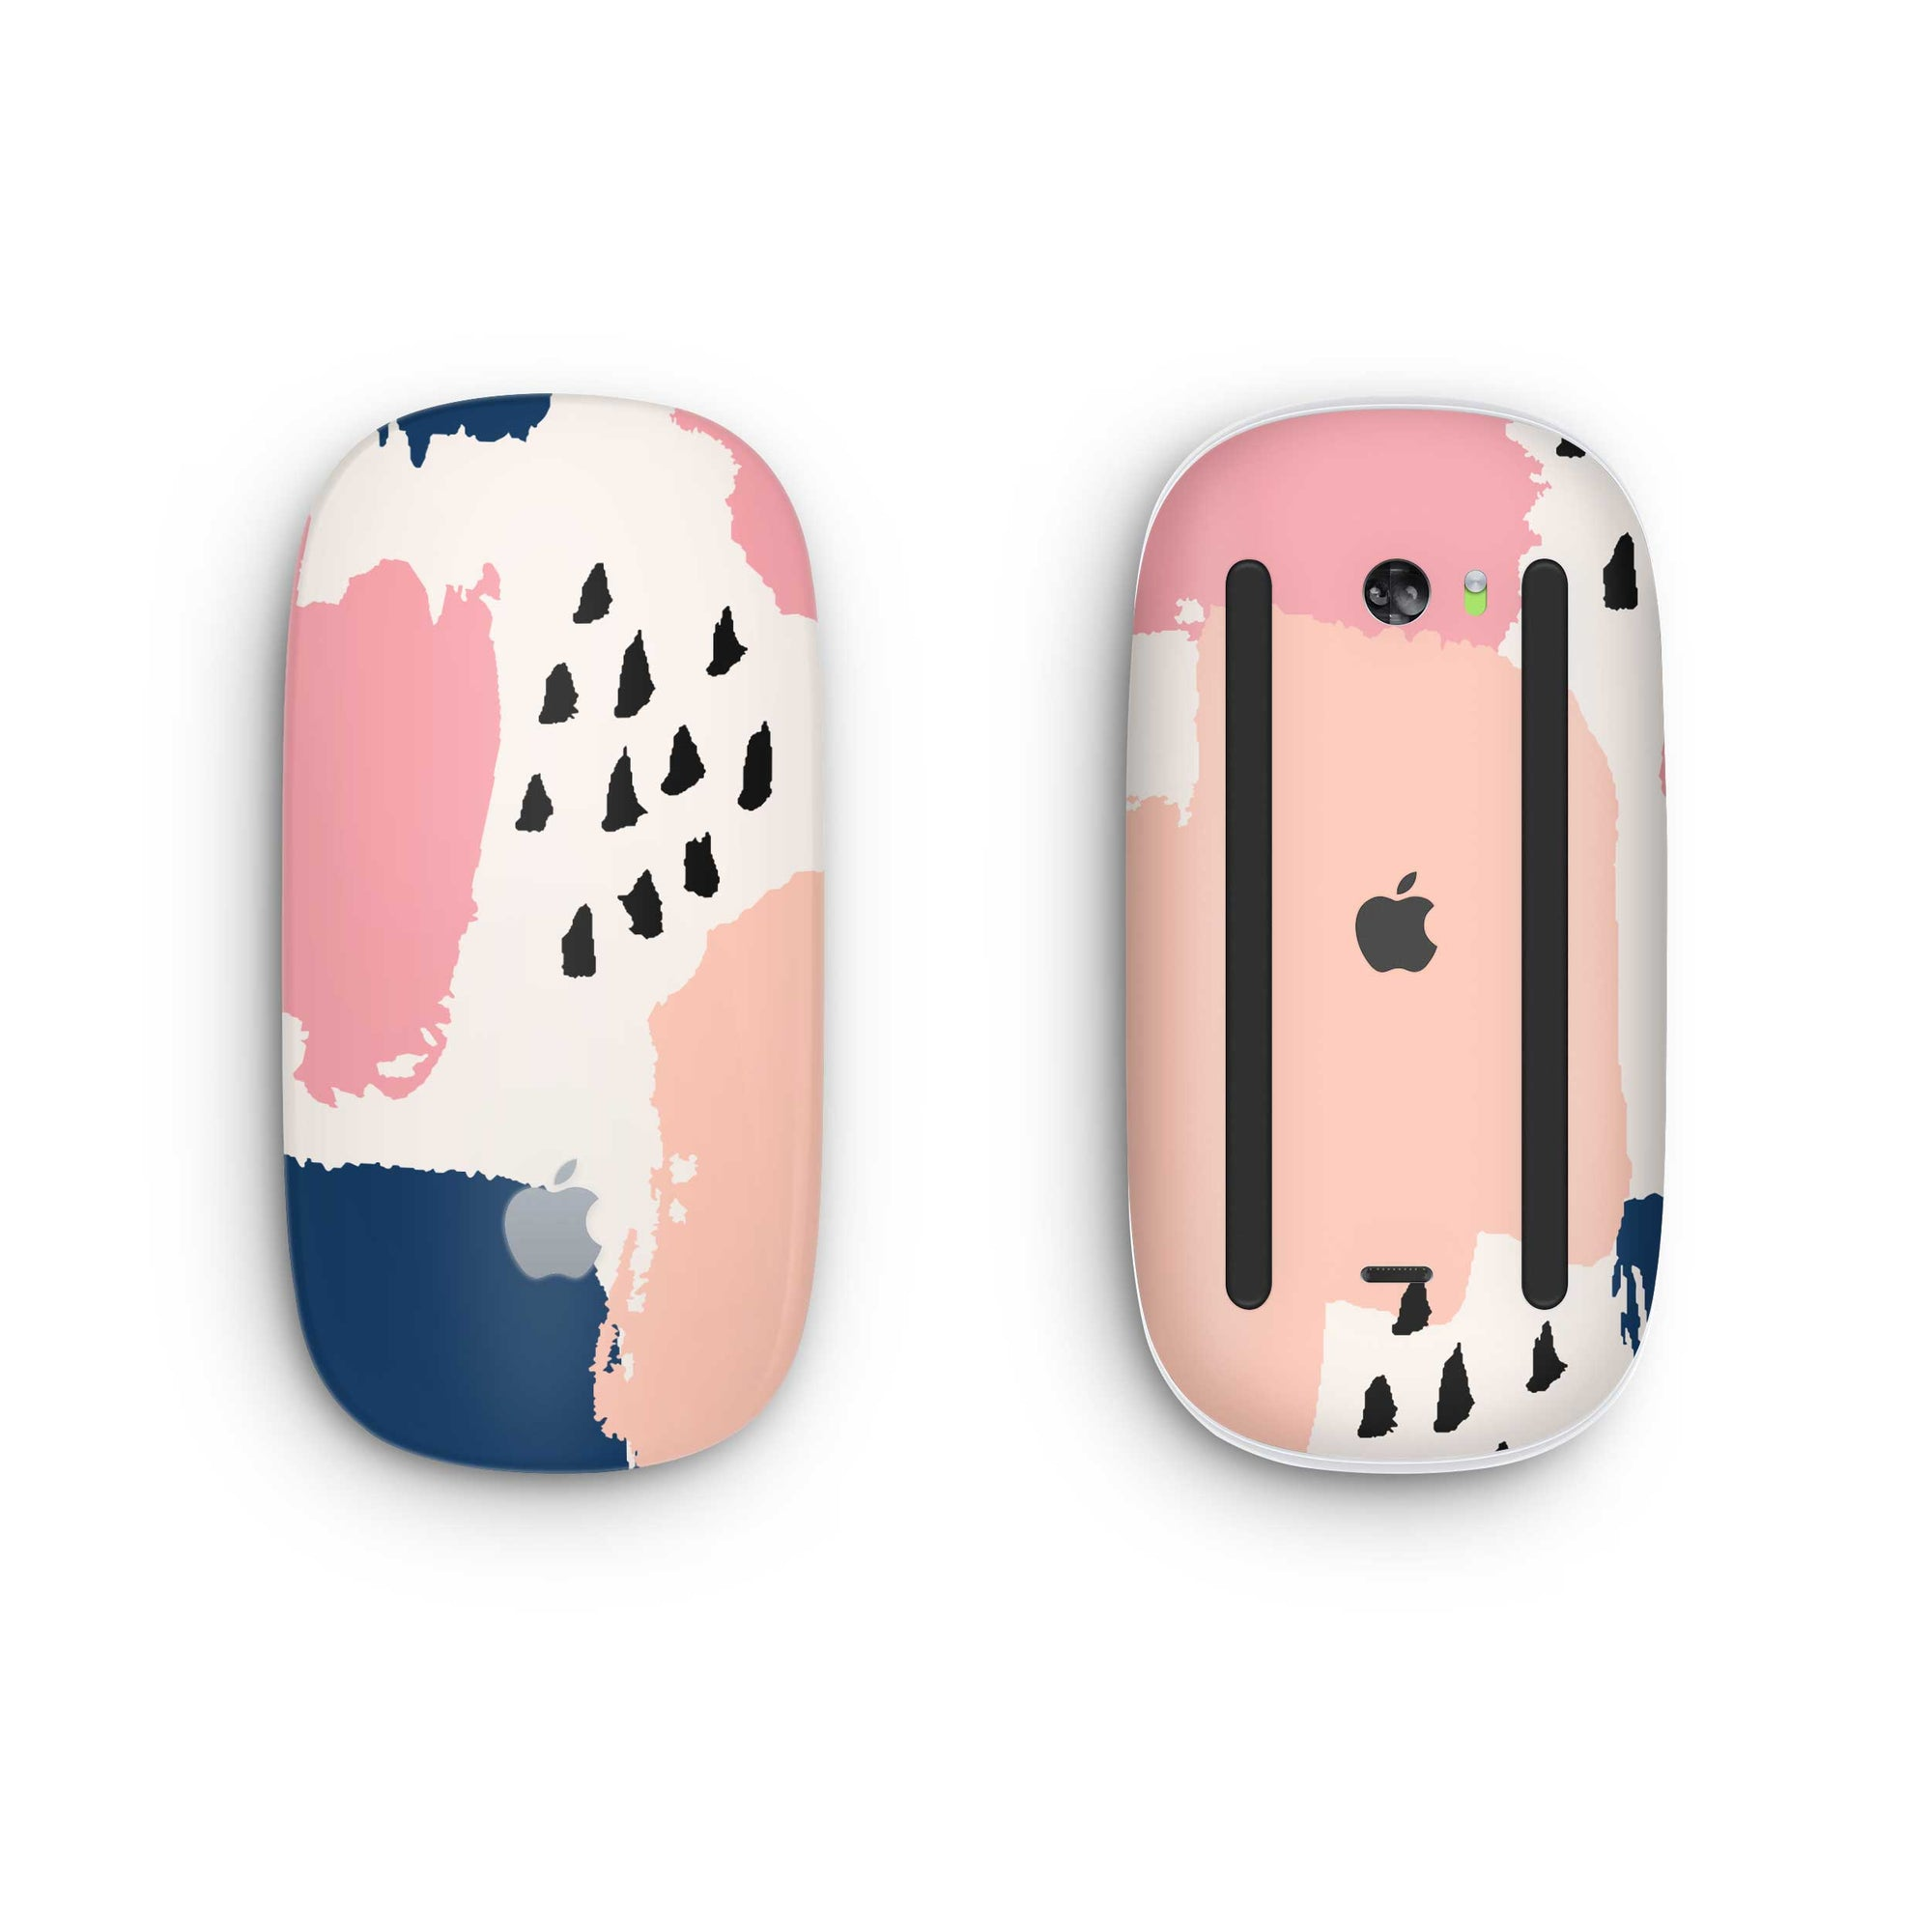 Miami Vice Magic Mouse 2 Skin